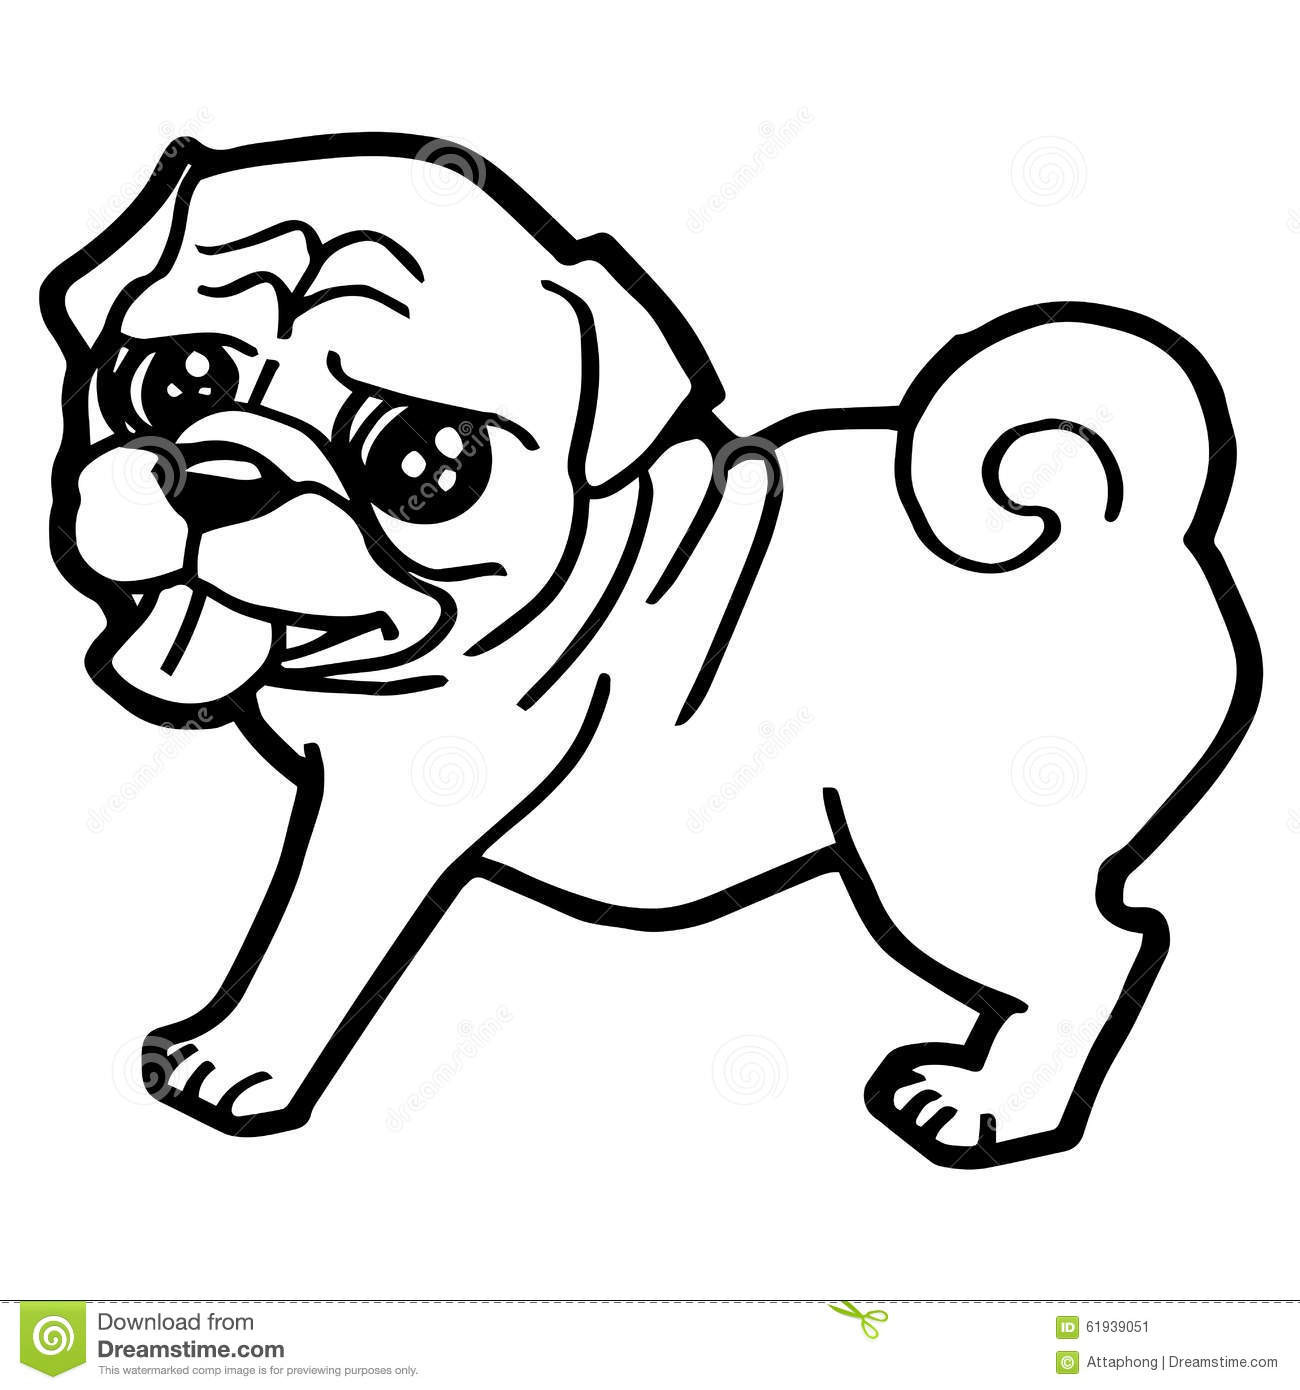 Cute Pug Coloring Pages at GetDrawings.com | Free for ...